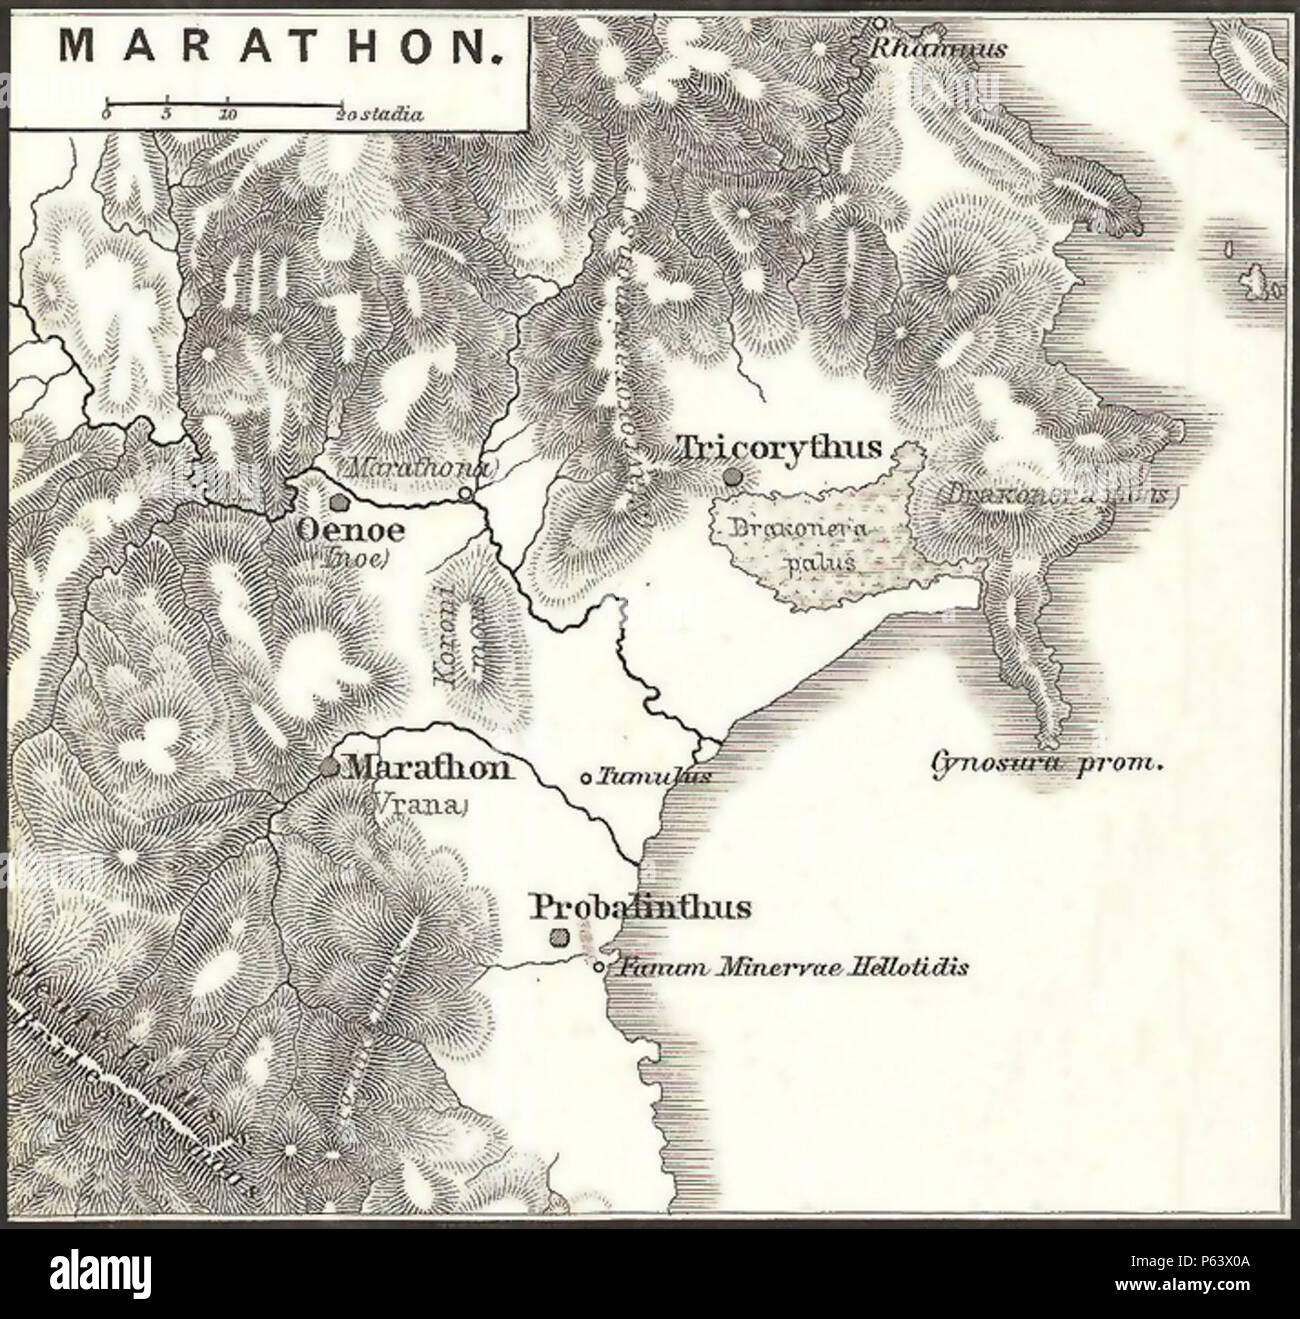 Marathon Greece Map on